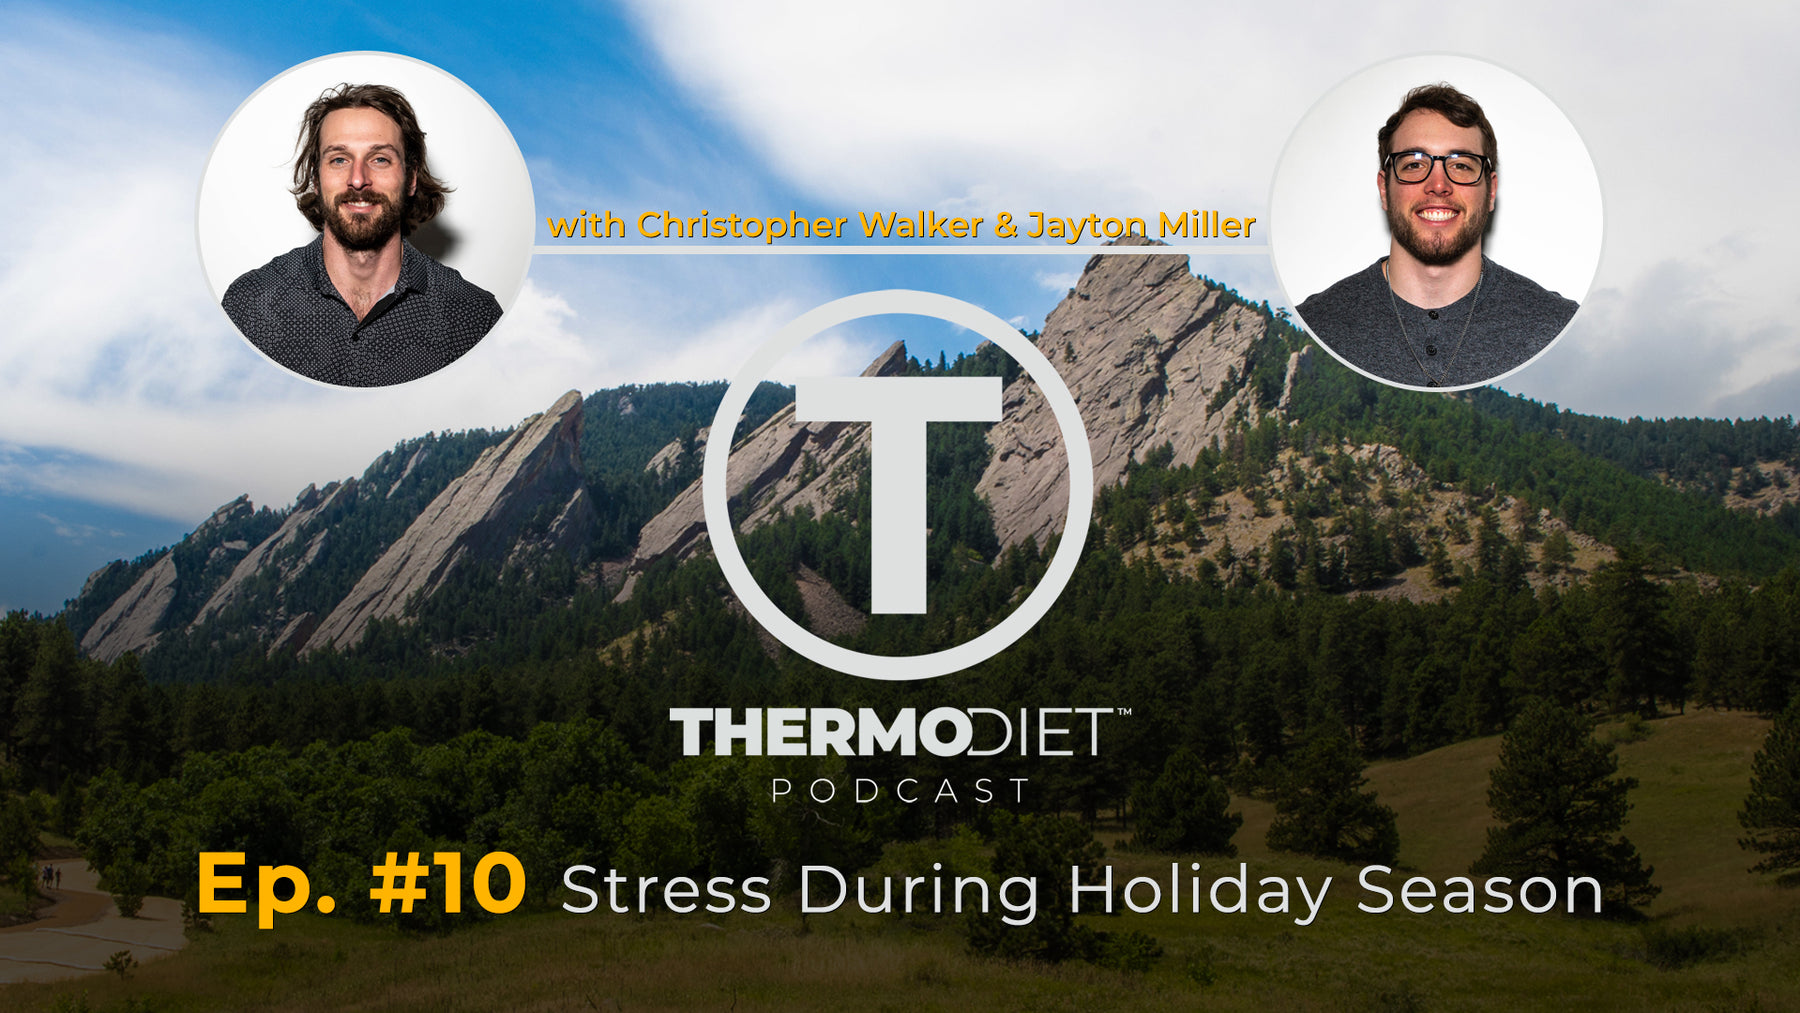 The Thermo Diet Podcast Episode 10 - Stressing About The Holidays?